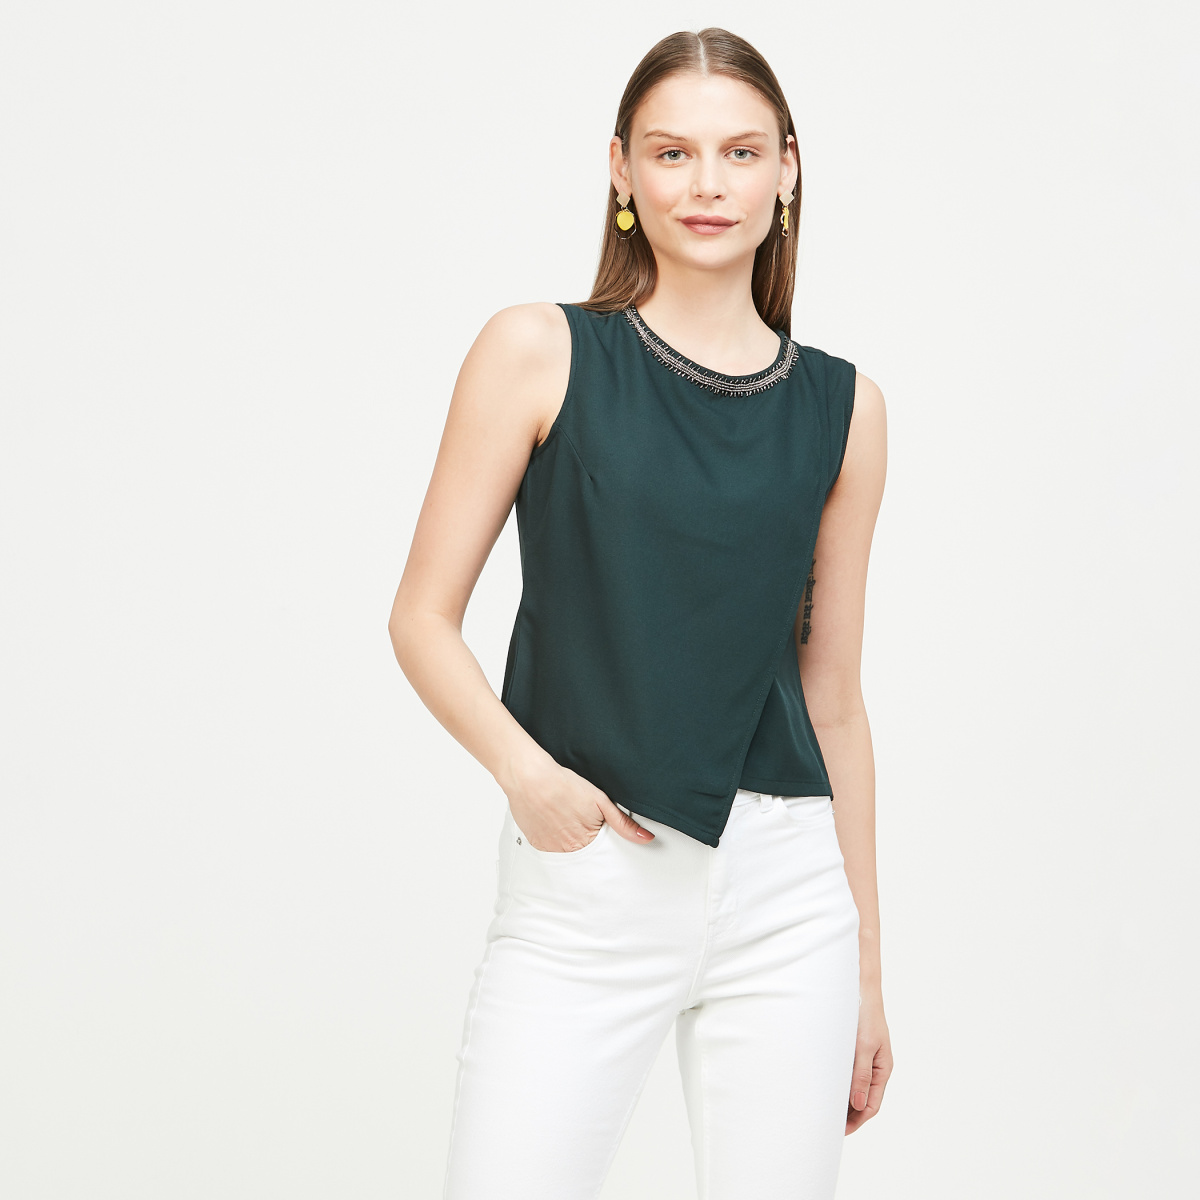 FABALLEY Embellished Sleeveless Top